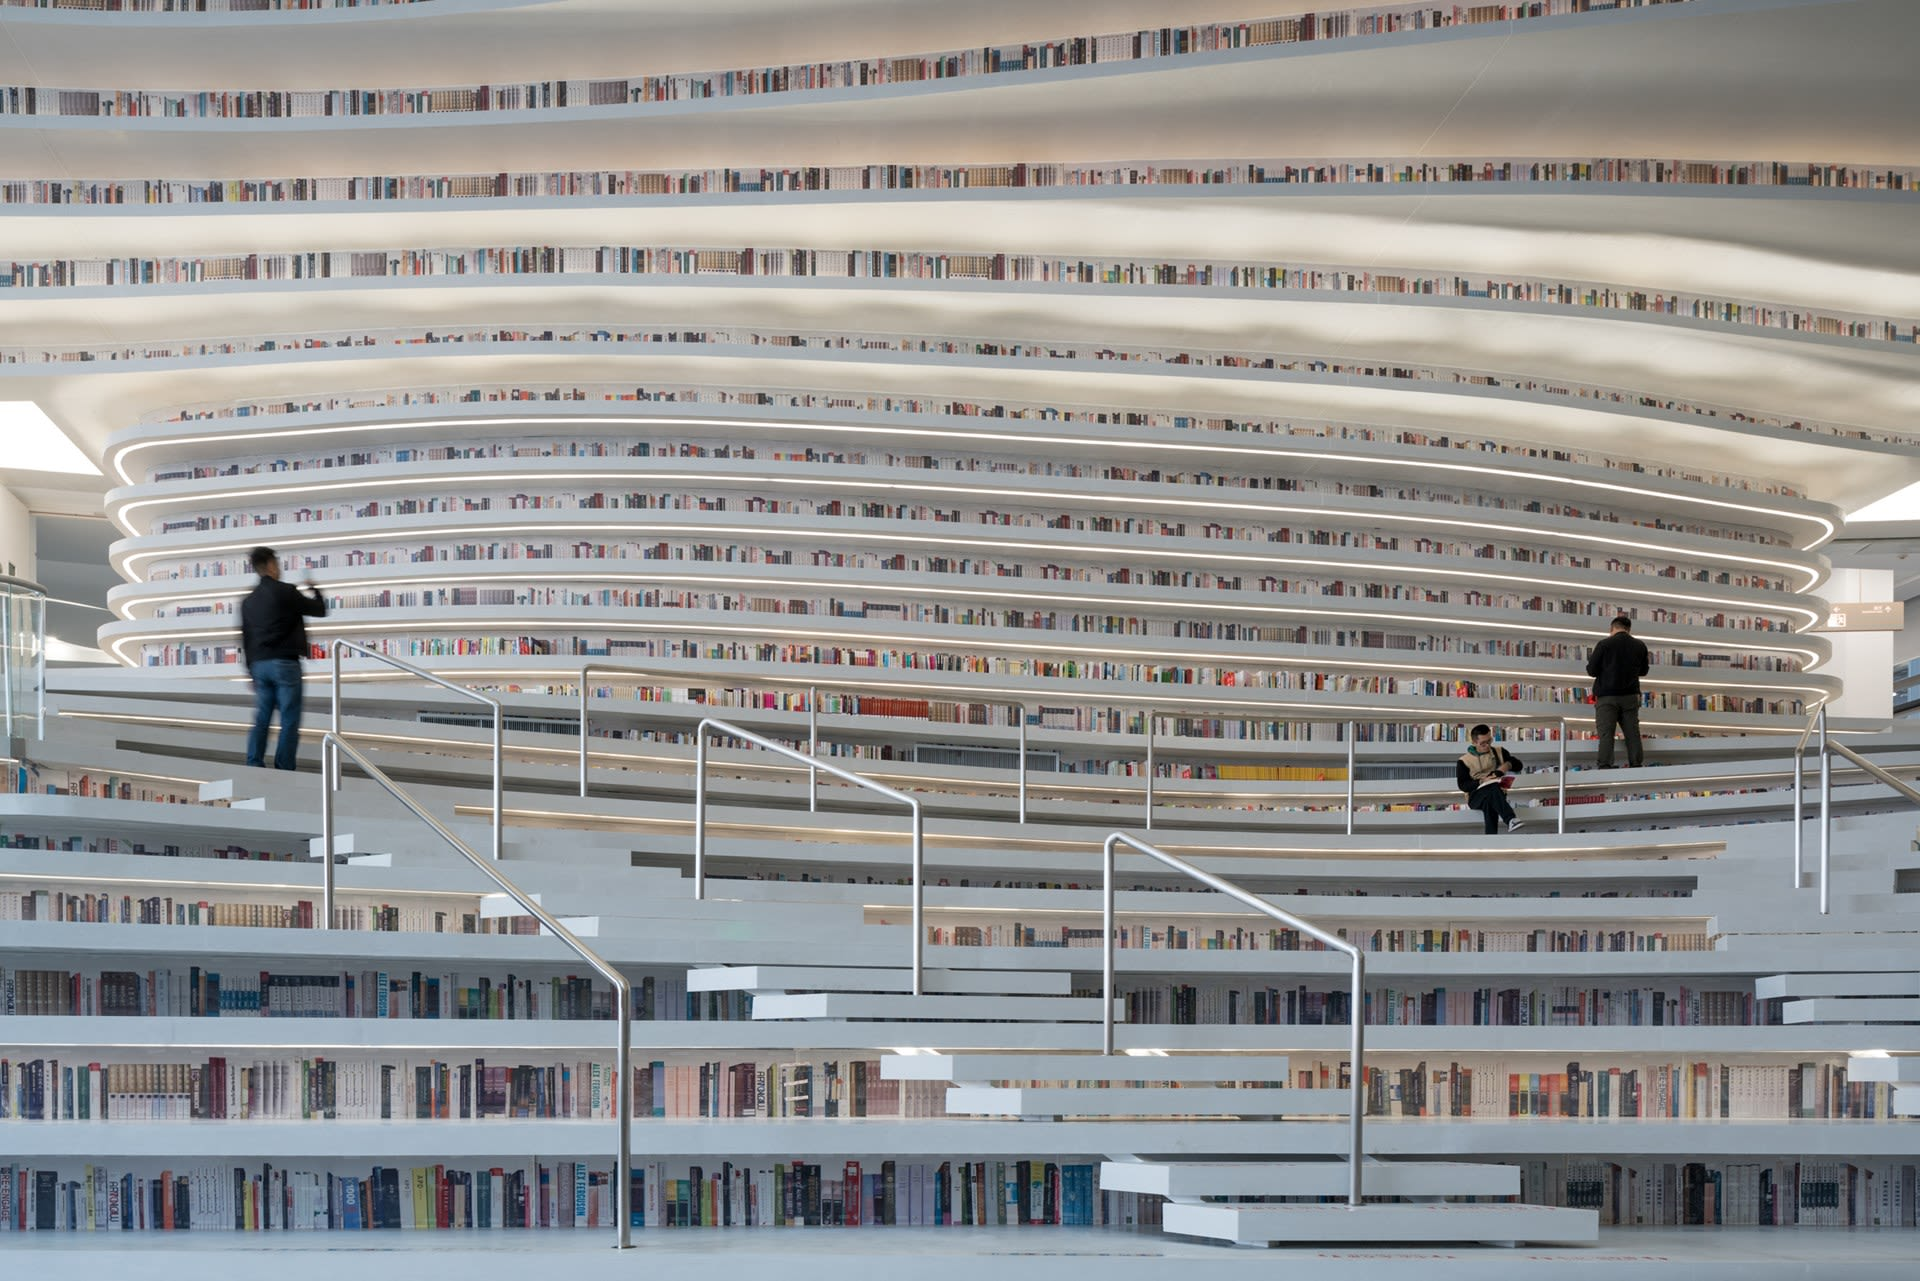 Architecture by MVRDV seen at Tianjin Binhai Vocational College College Library, Binhai Xinqu - Tianjin Binhai Library